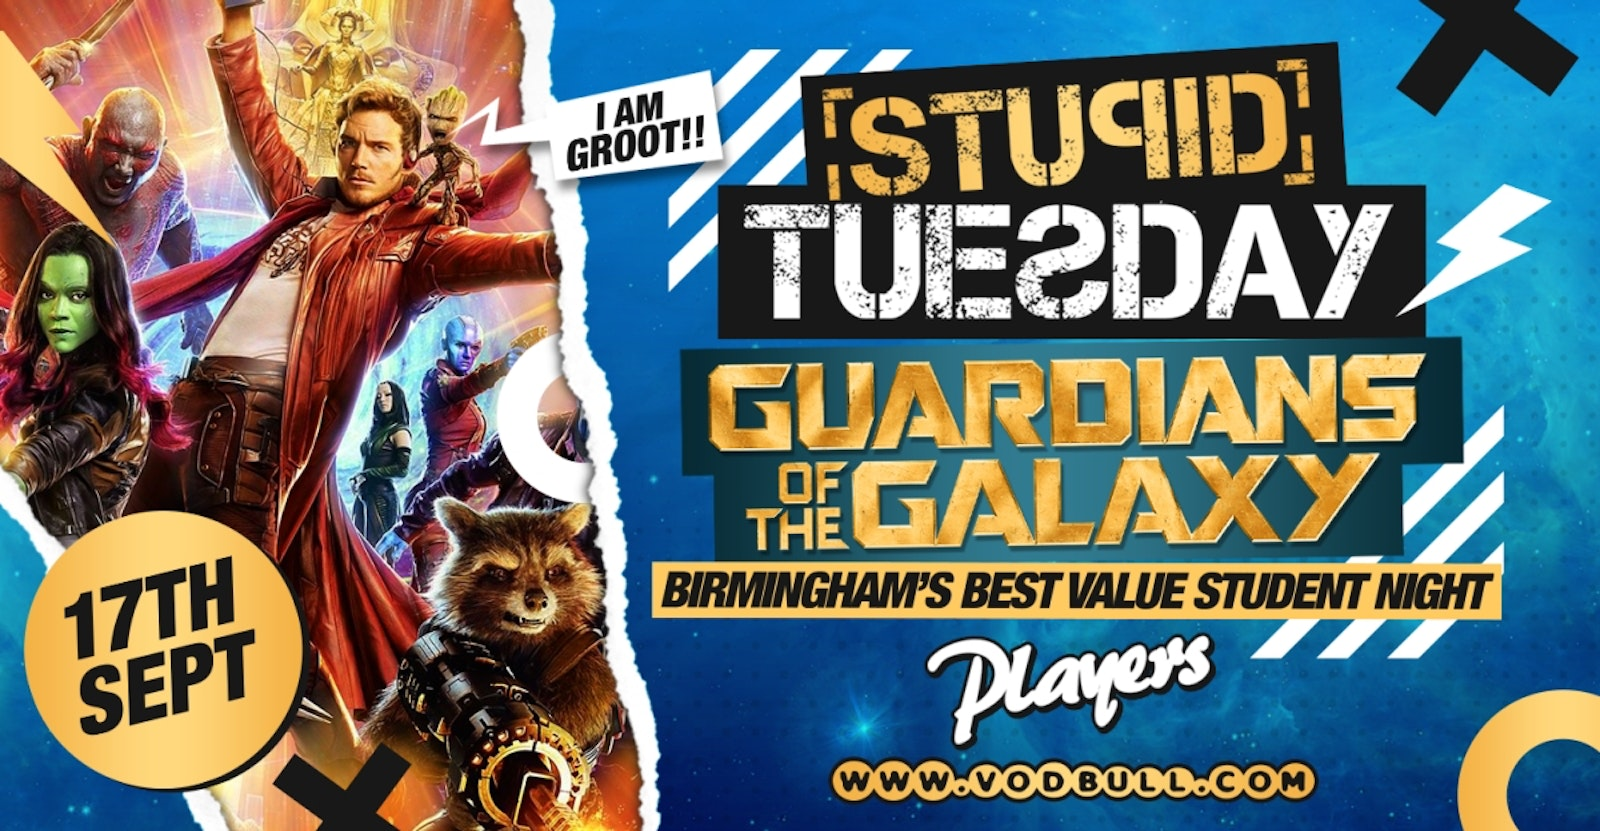 🌌 Stuesday: Guardians of the Galaxy Freshers Week 🌌